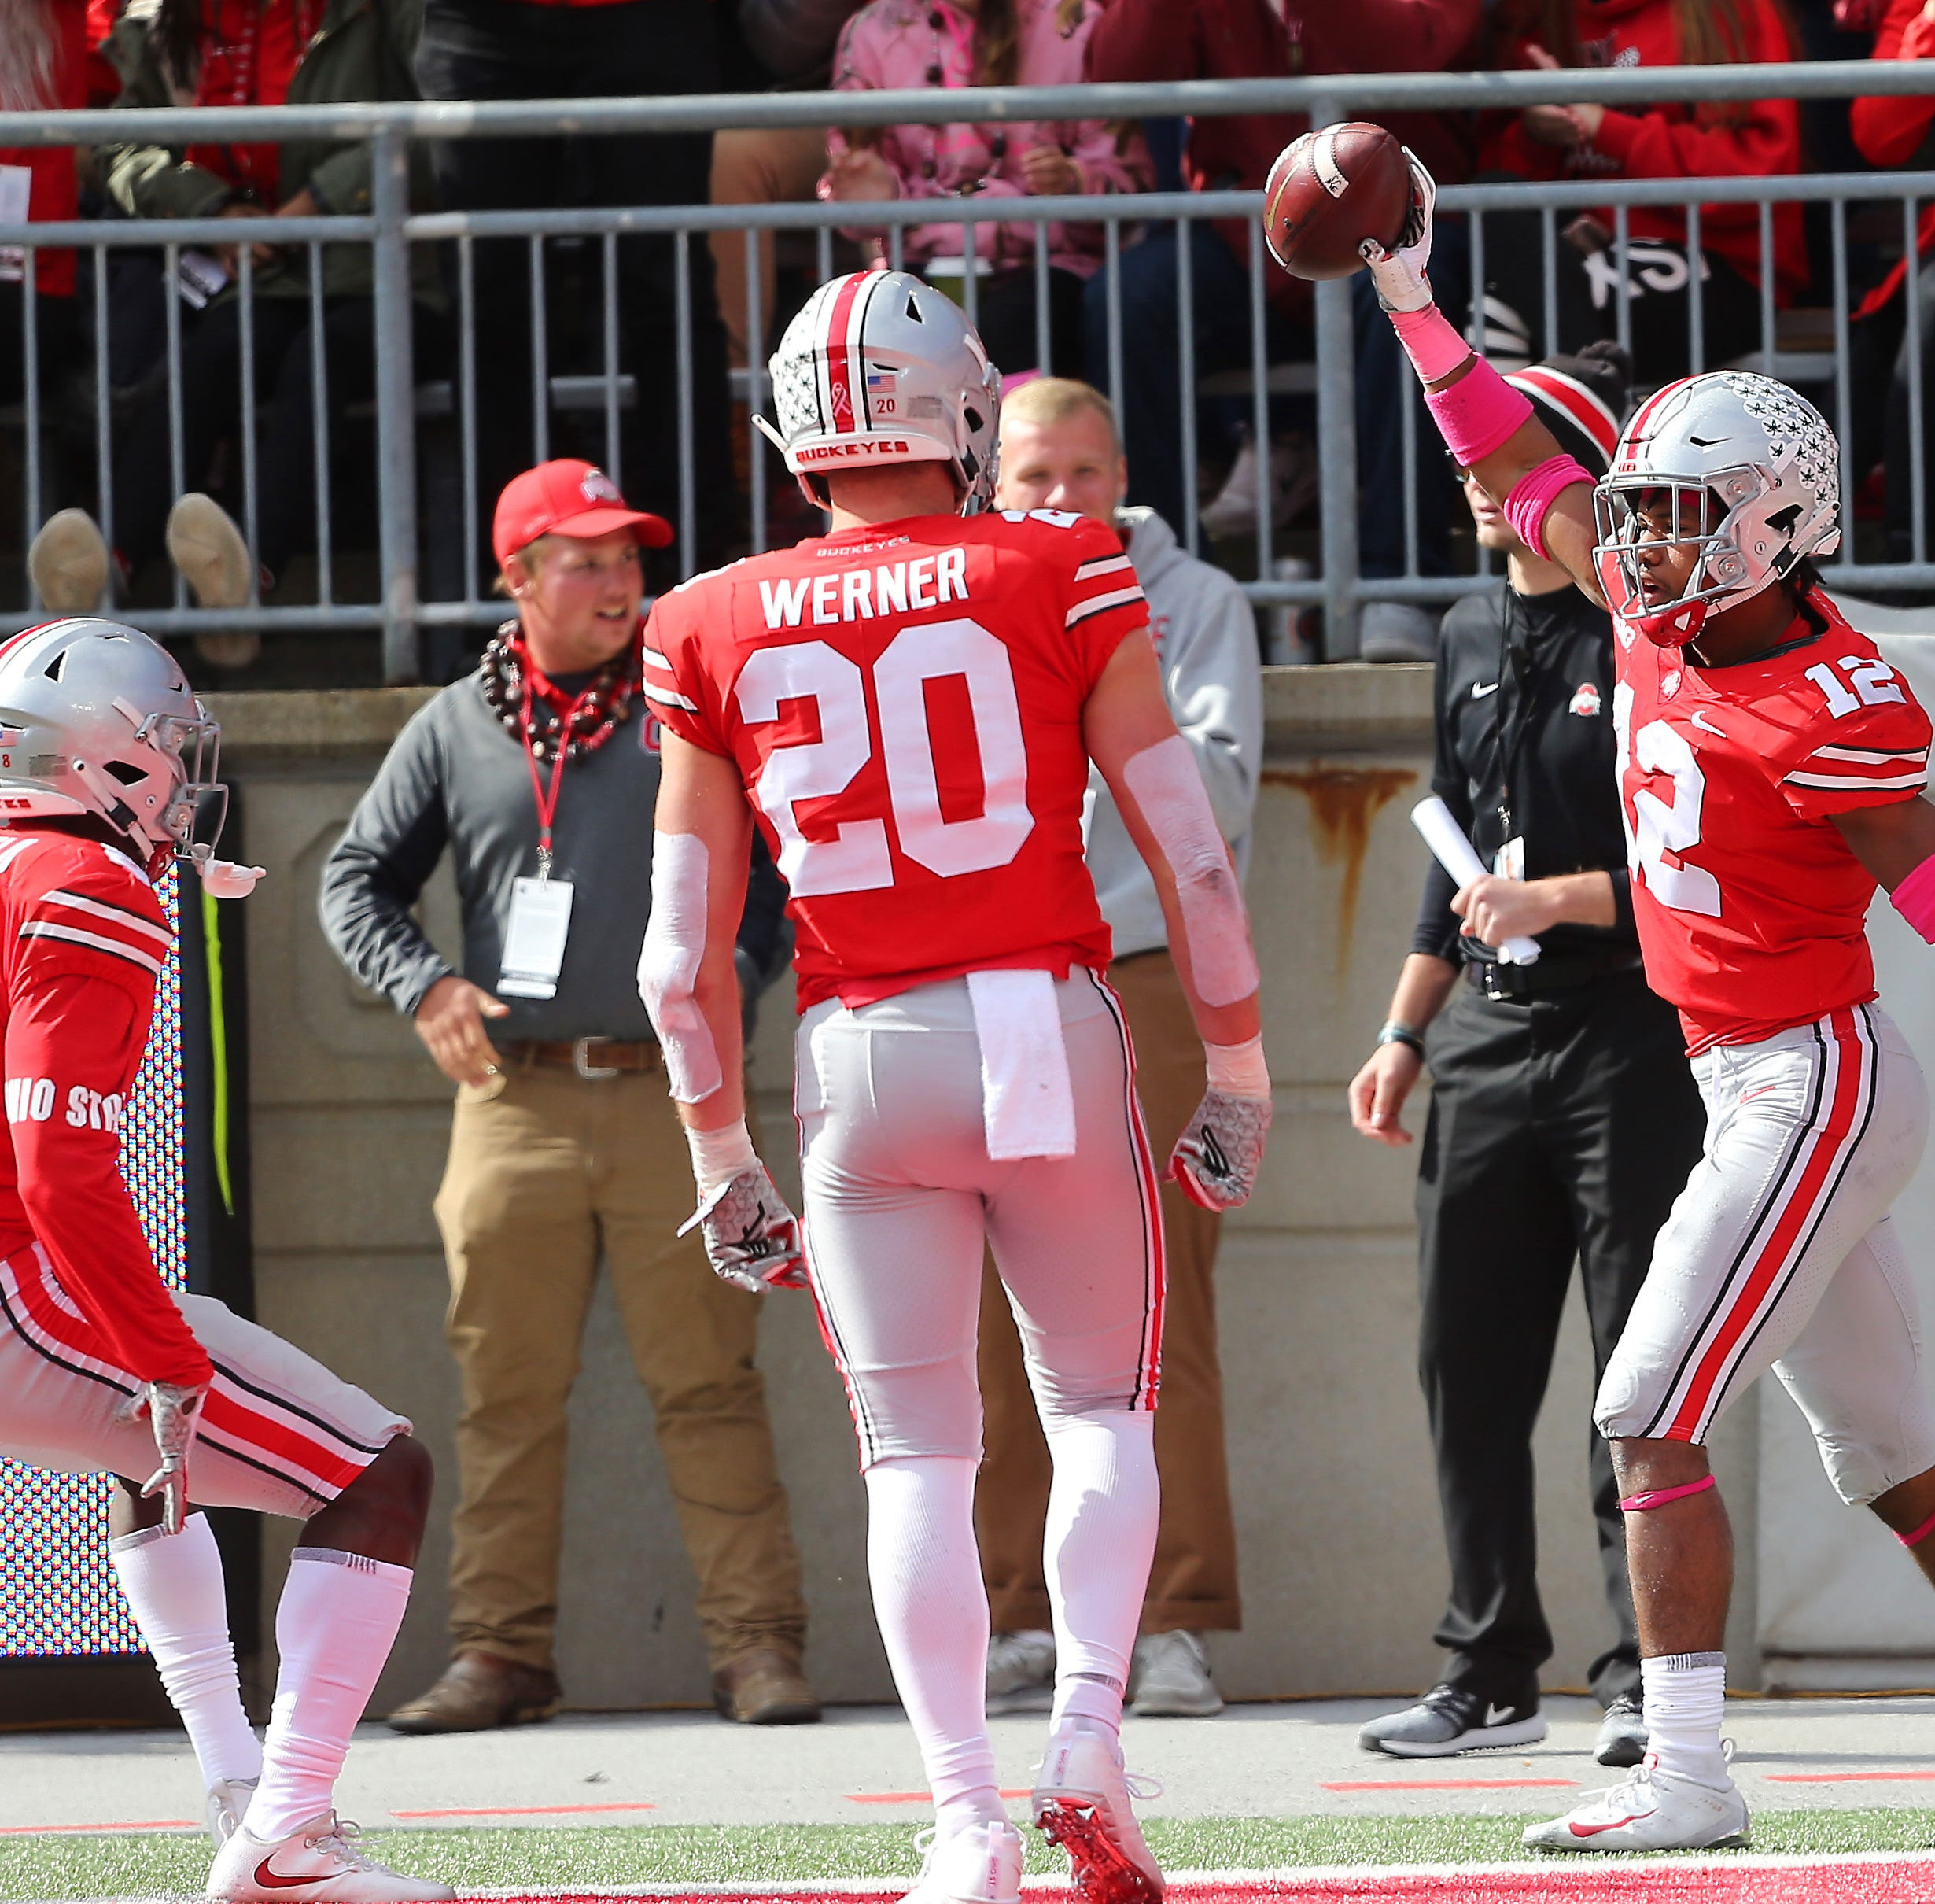 OSU scouting report: Points could be aplenty at Purdue